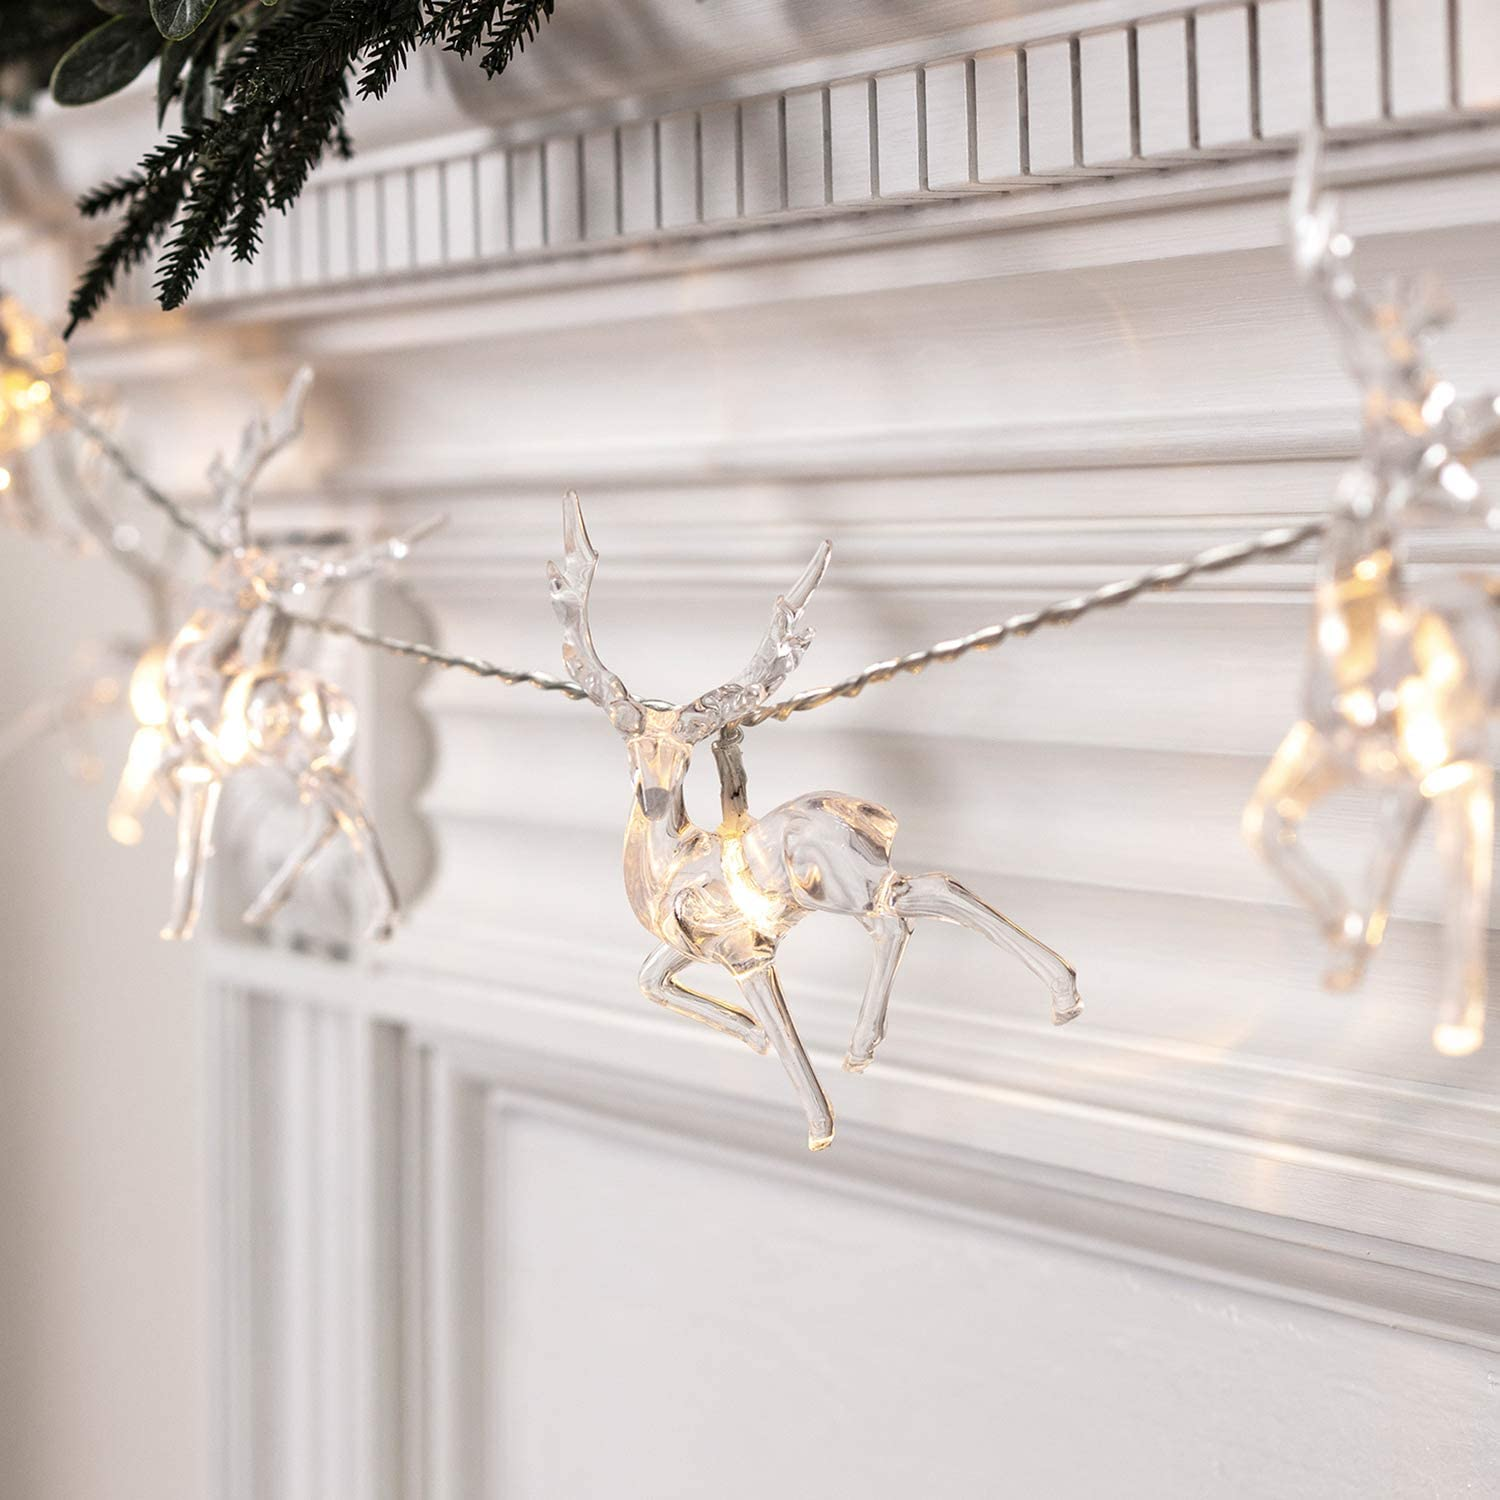 Lights4fun, Inc. 10 Warm White LED Reindeer Battery Operated Christmas String Lights